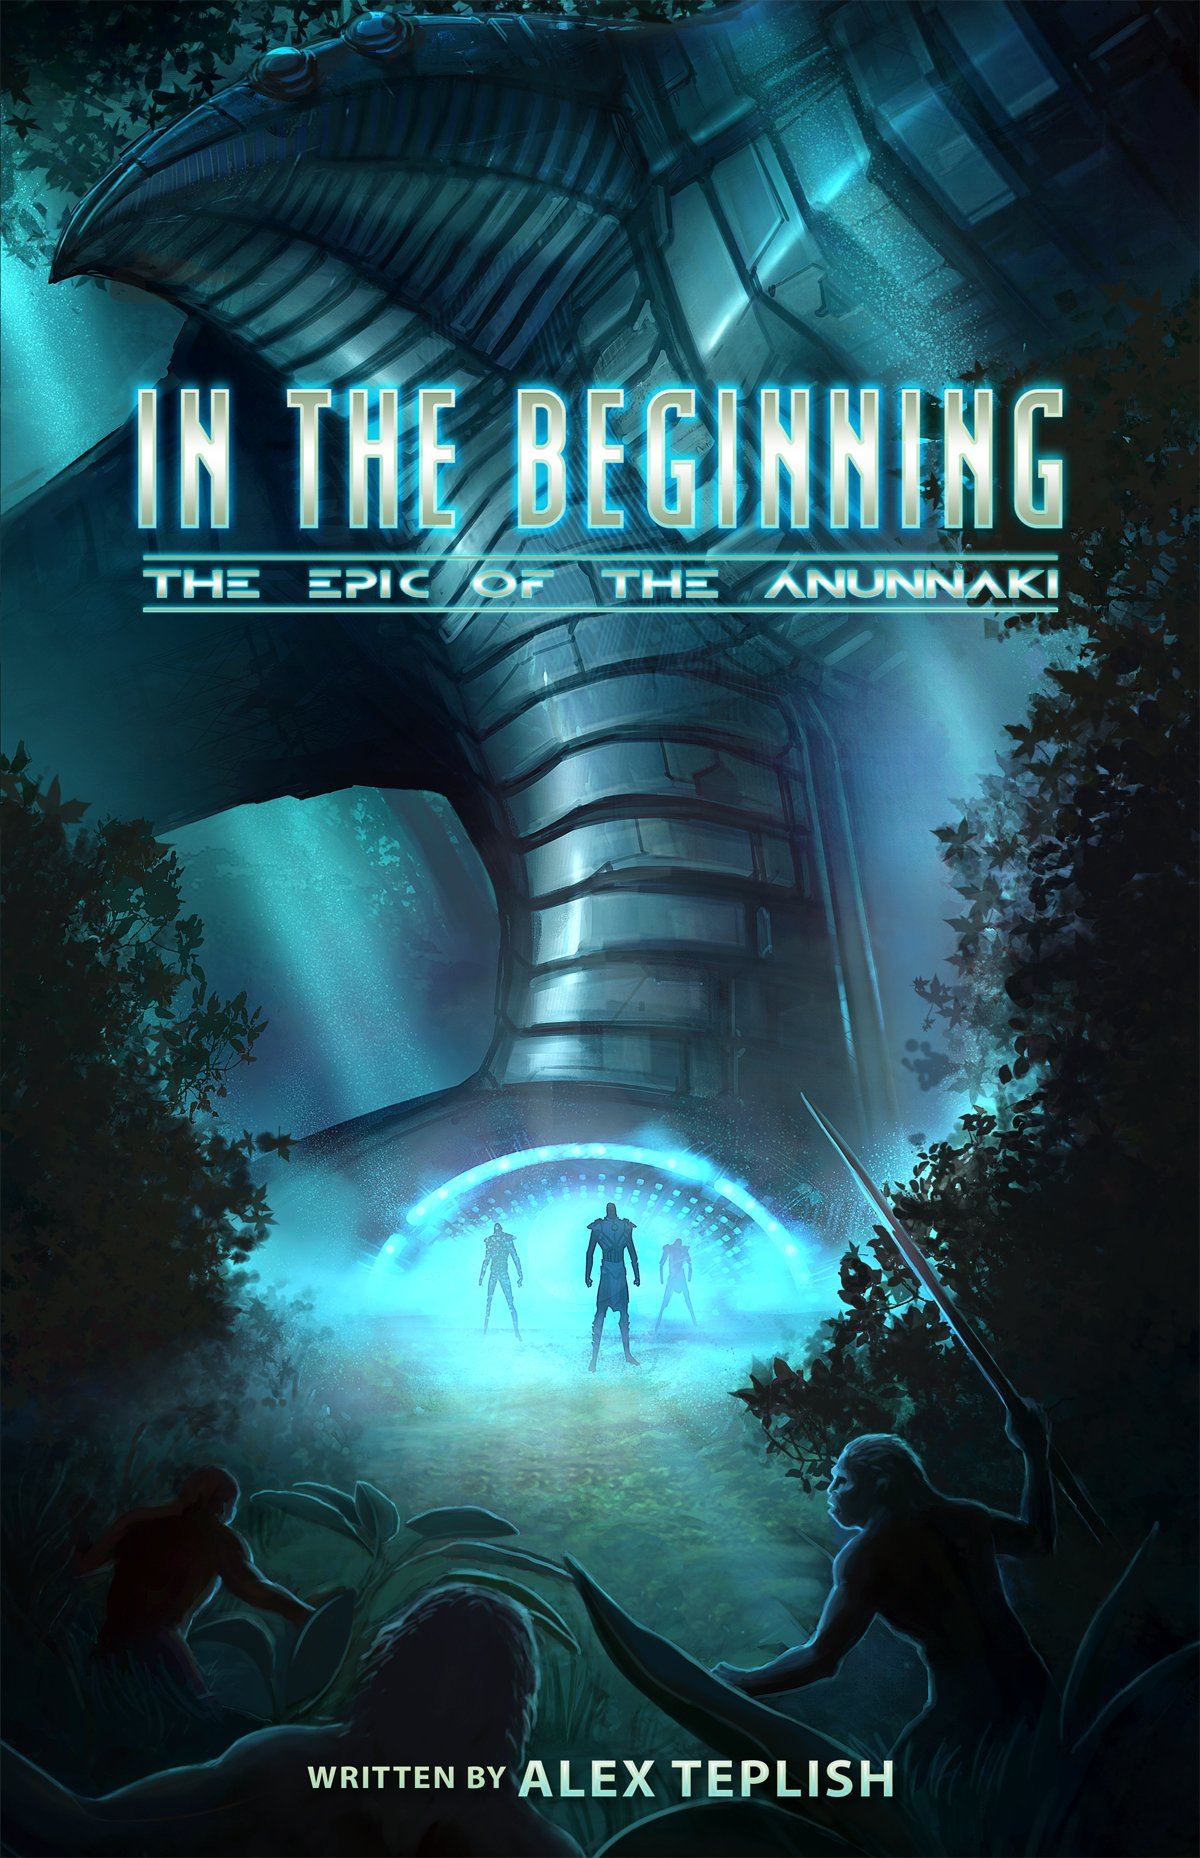 In the Beginning: The Epic of the Anunnaki by Alex Teplish